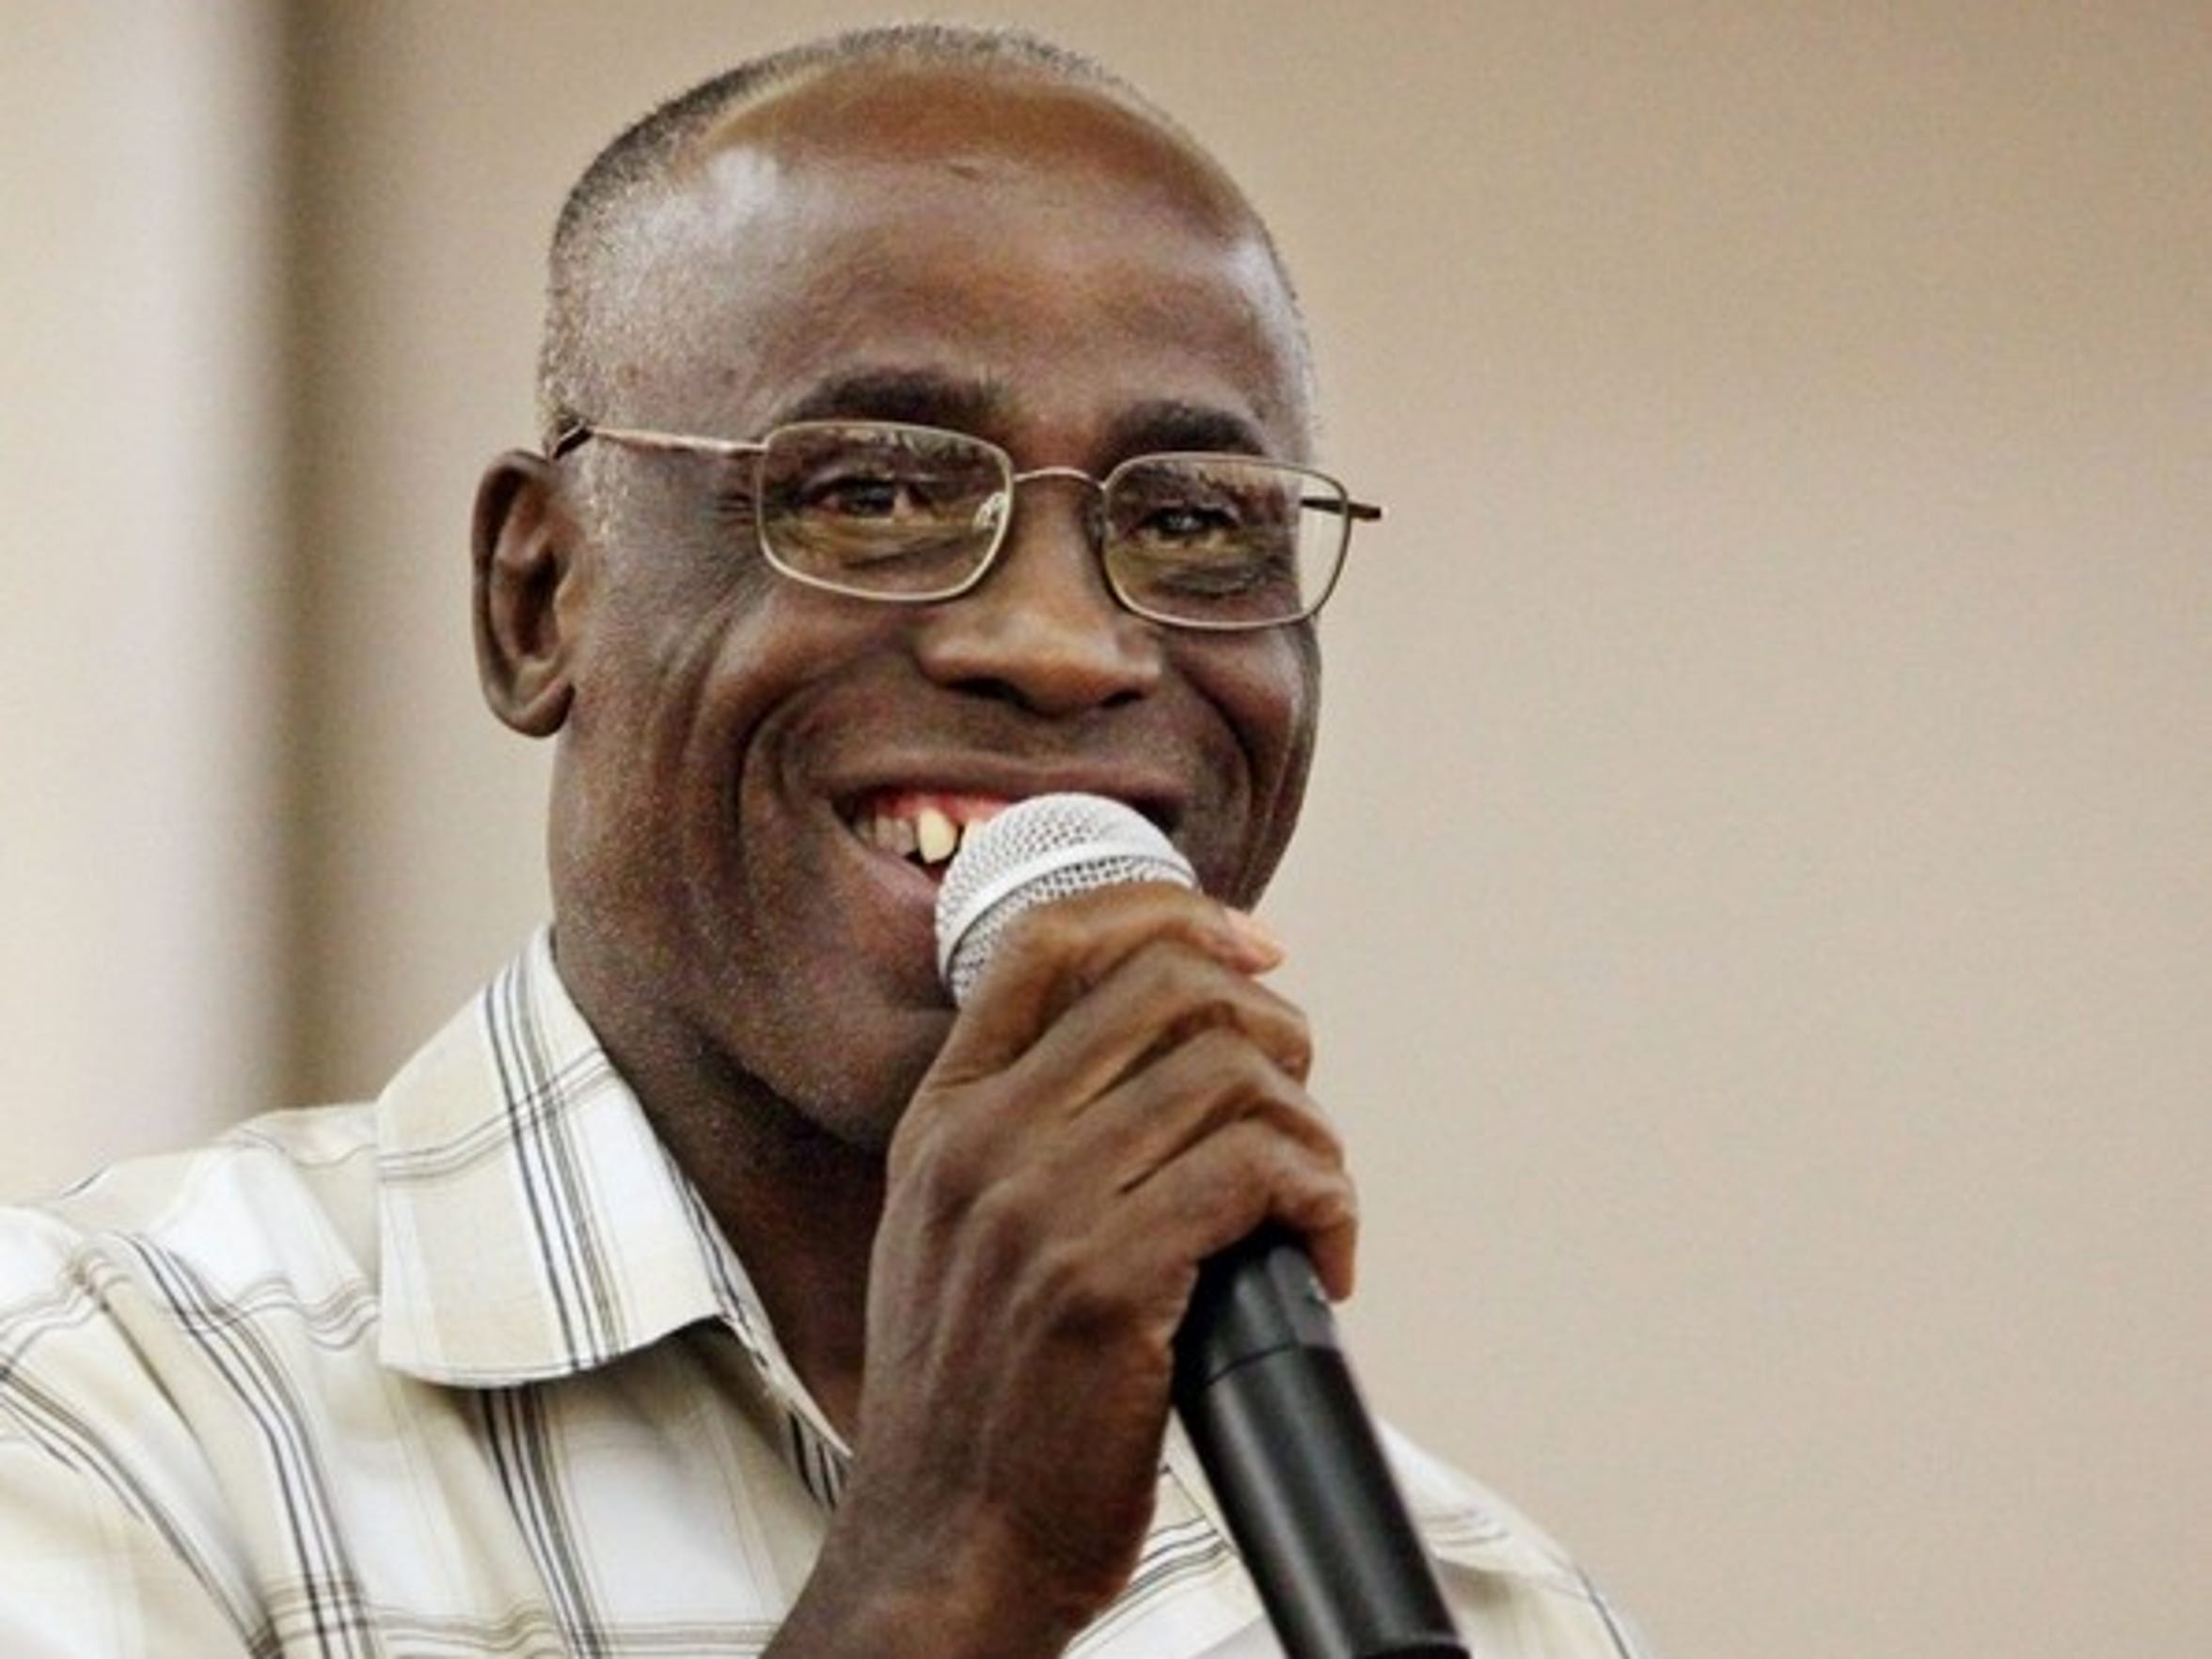 James Bain, who served 35 years in prison, was exonerated